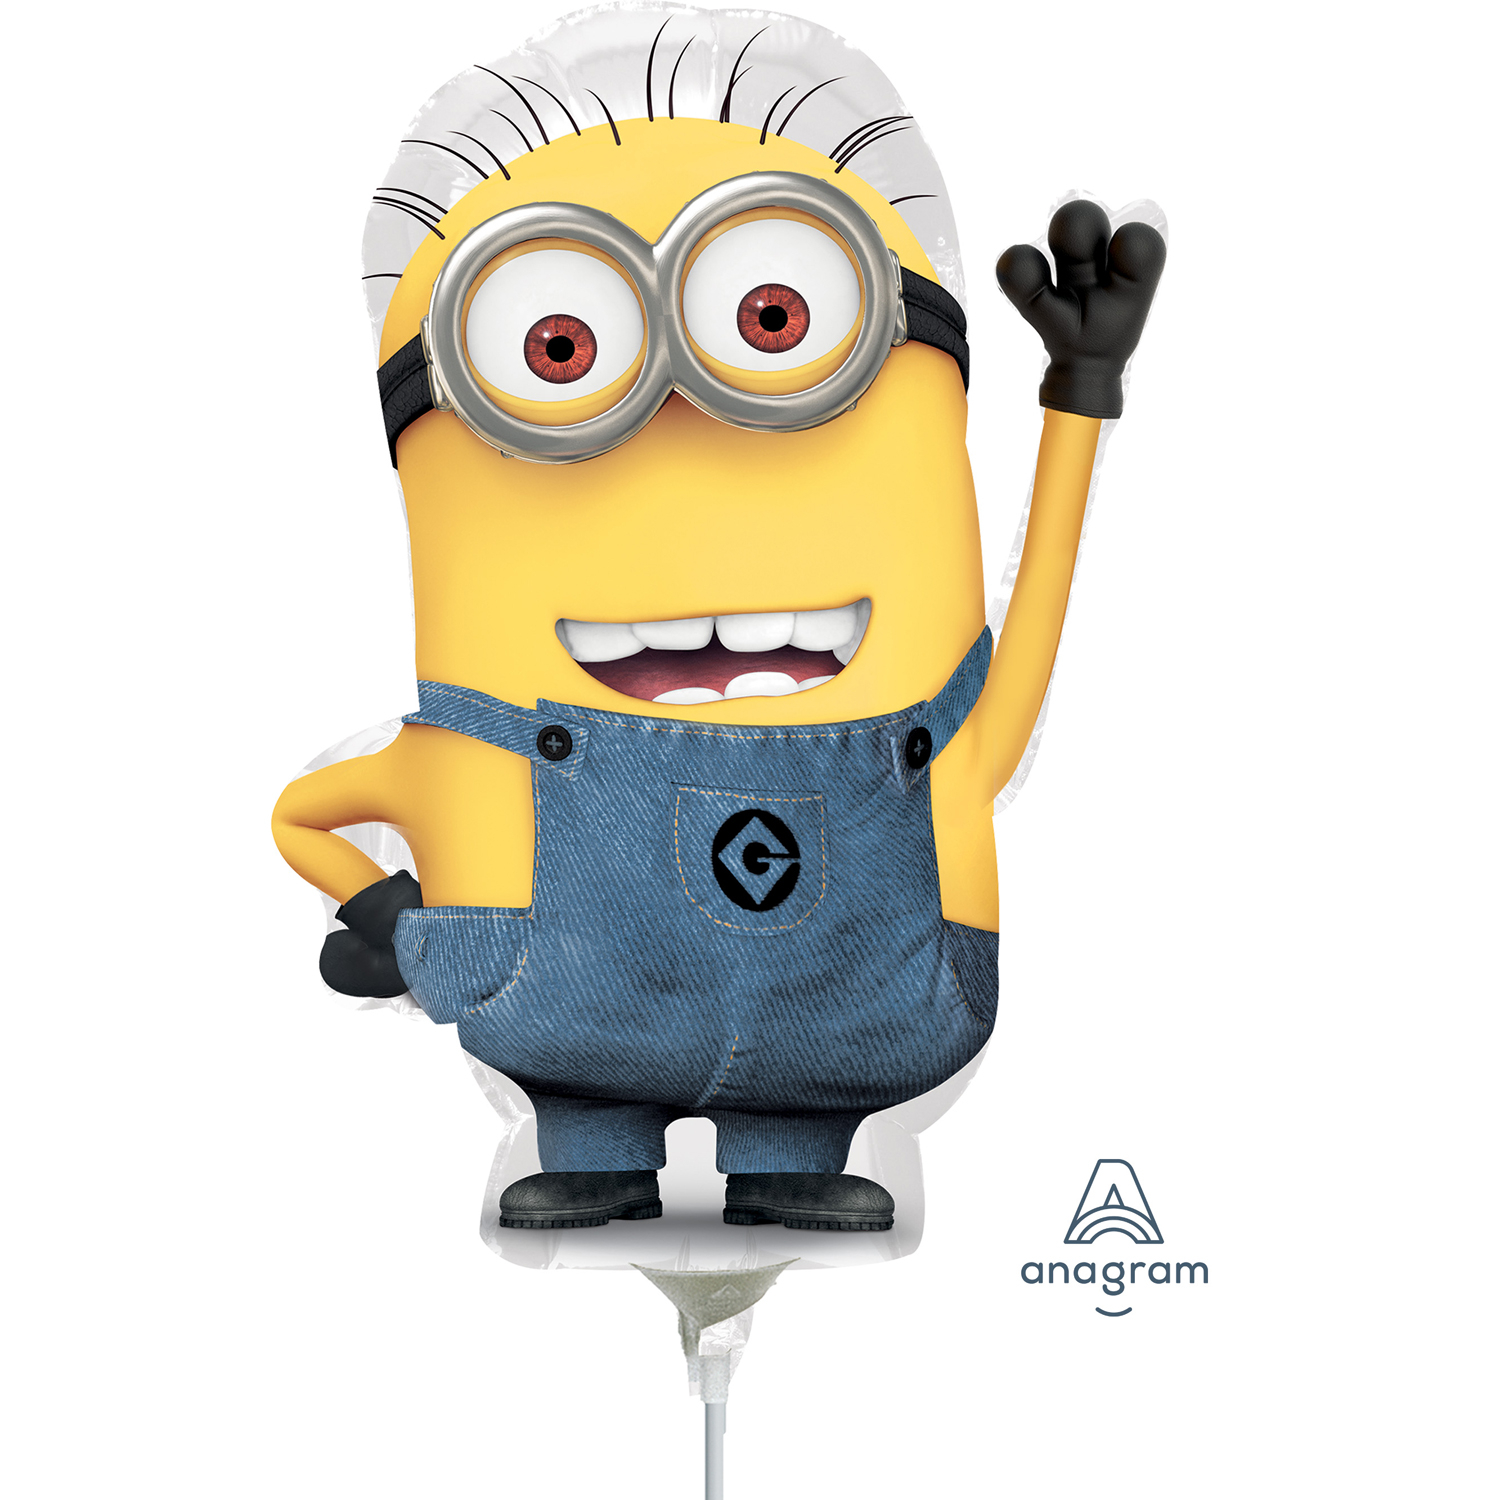 Minions: The Rise of Gru Loses Release Date Due to COVID